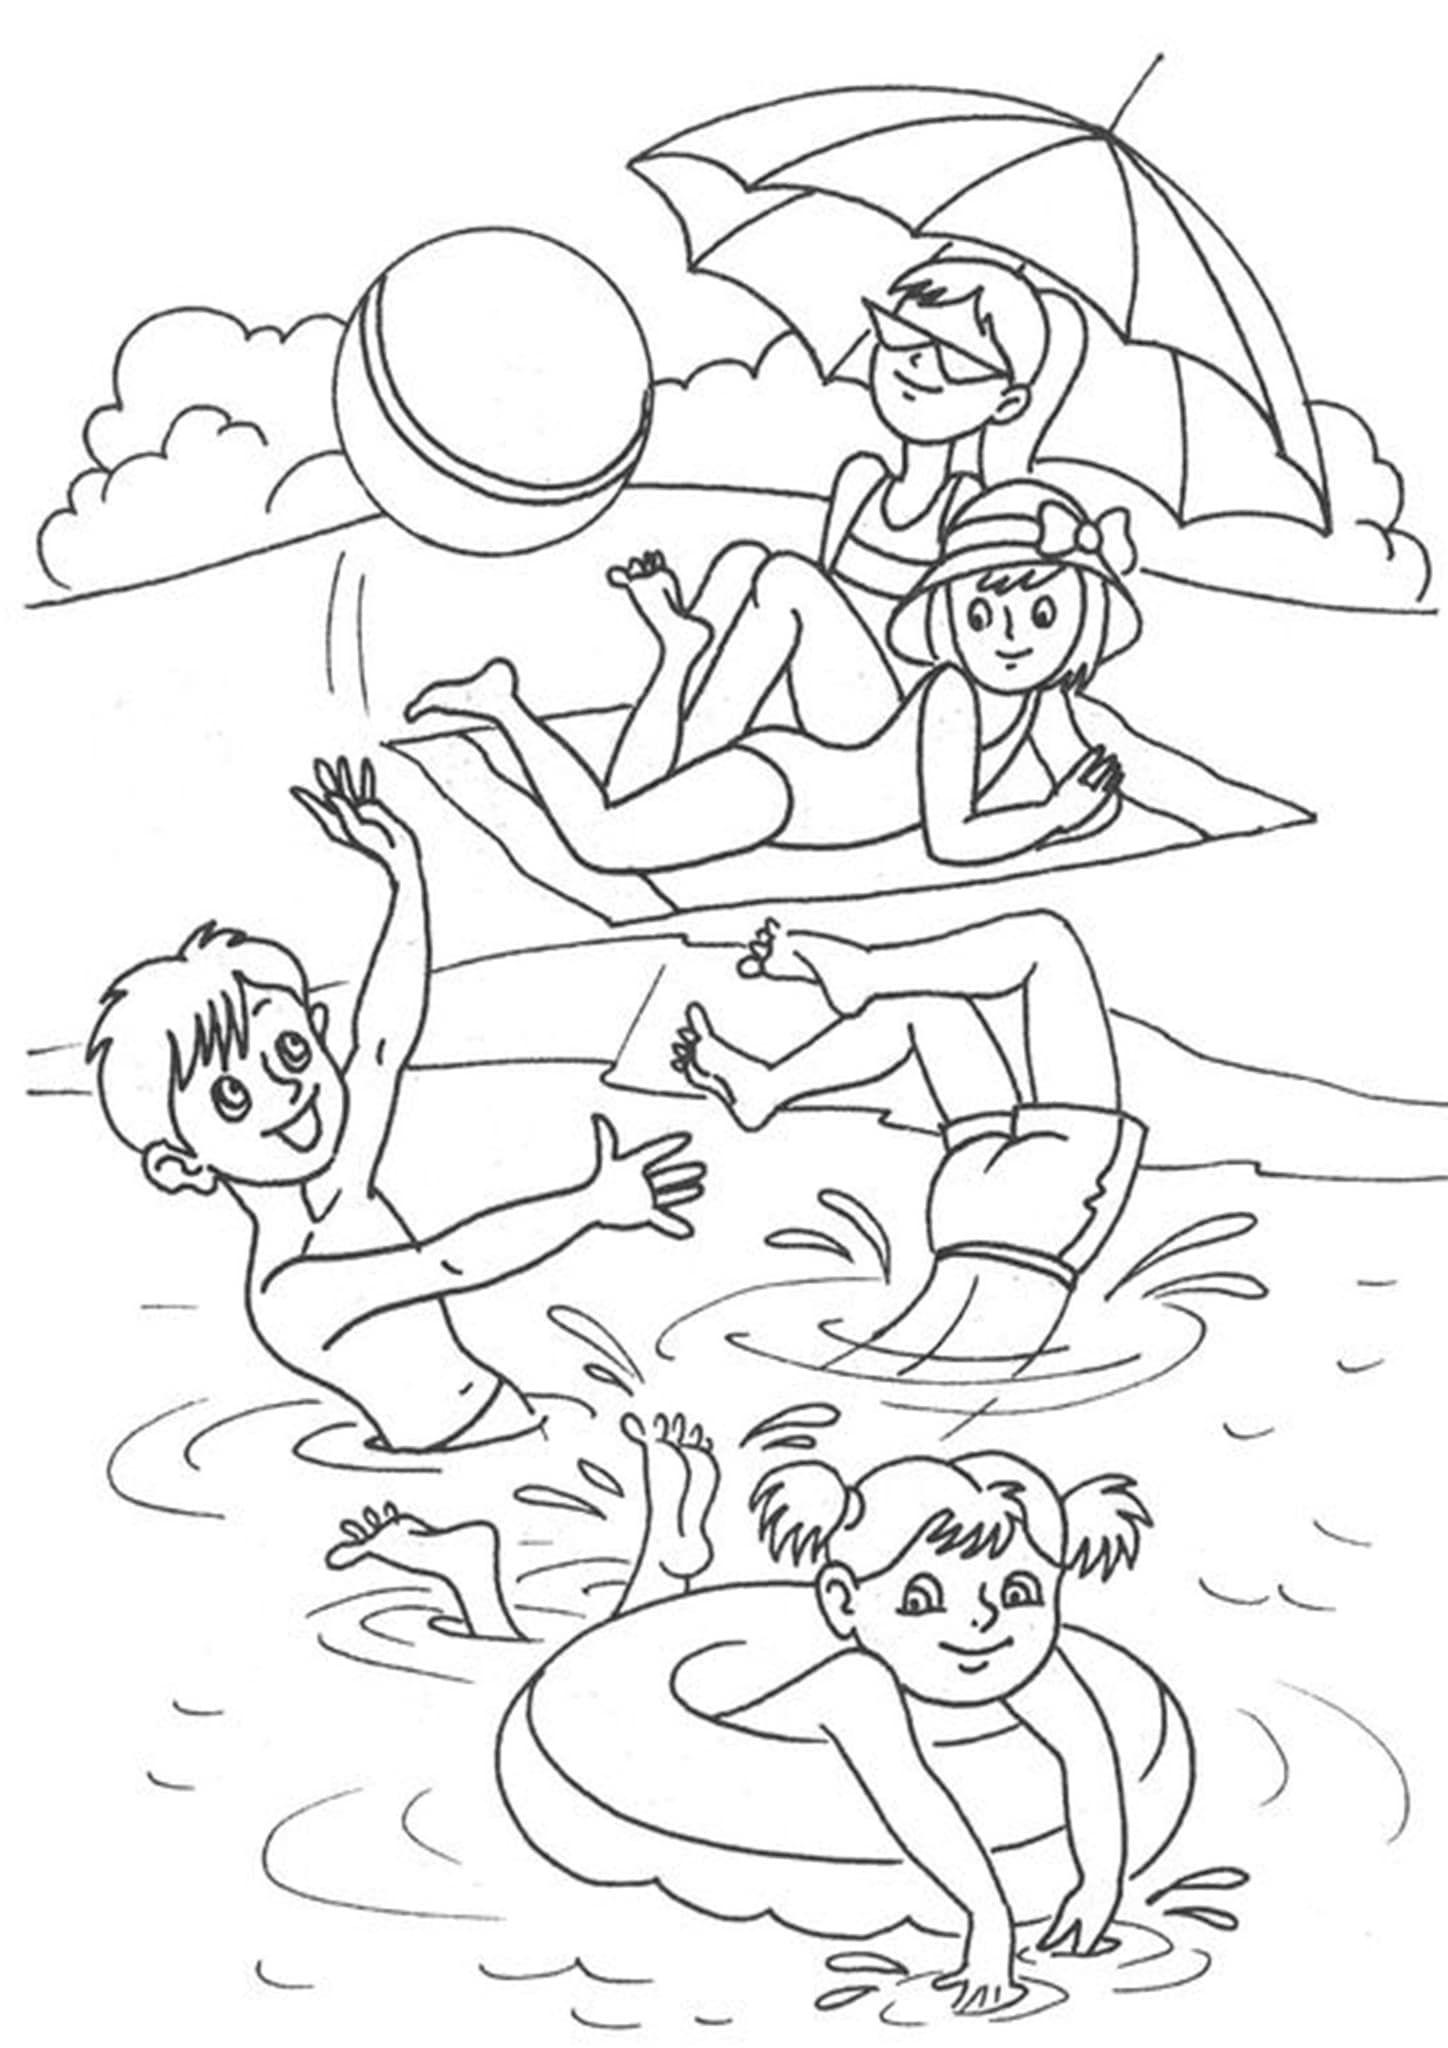 cute summer coloring pages free easy to print summer coloring pages in 2020 summer coloring cute pages